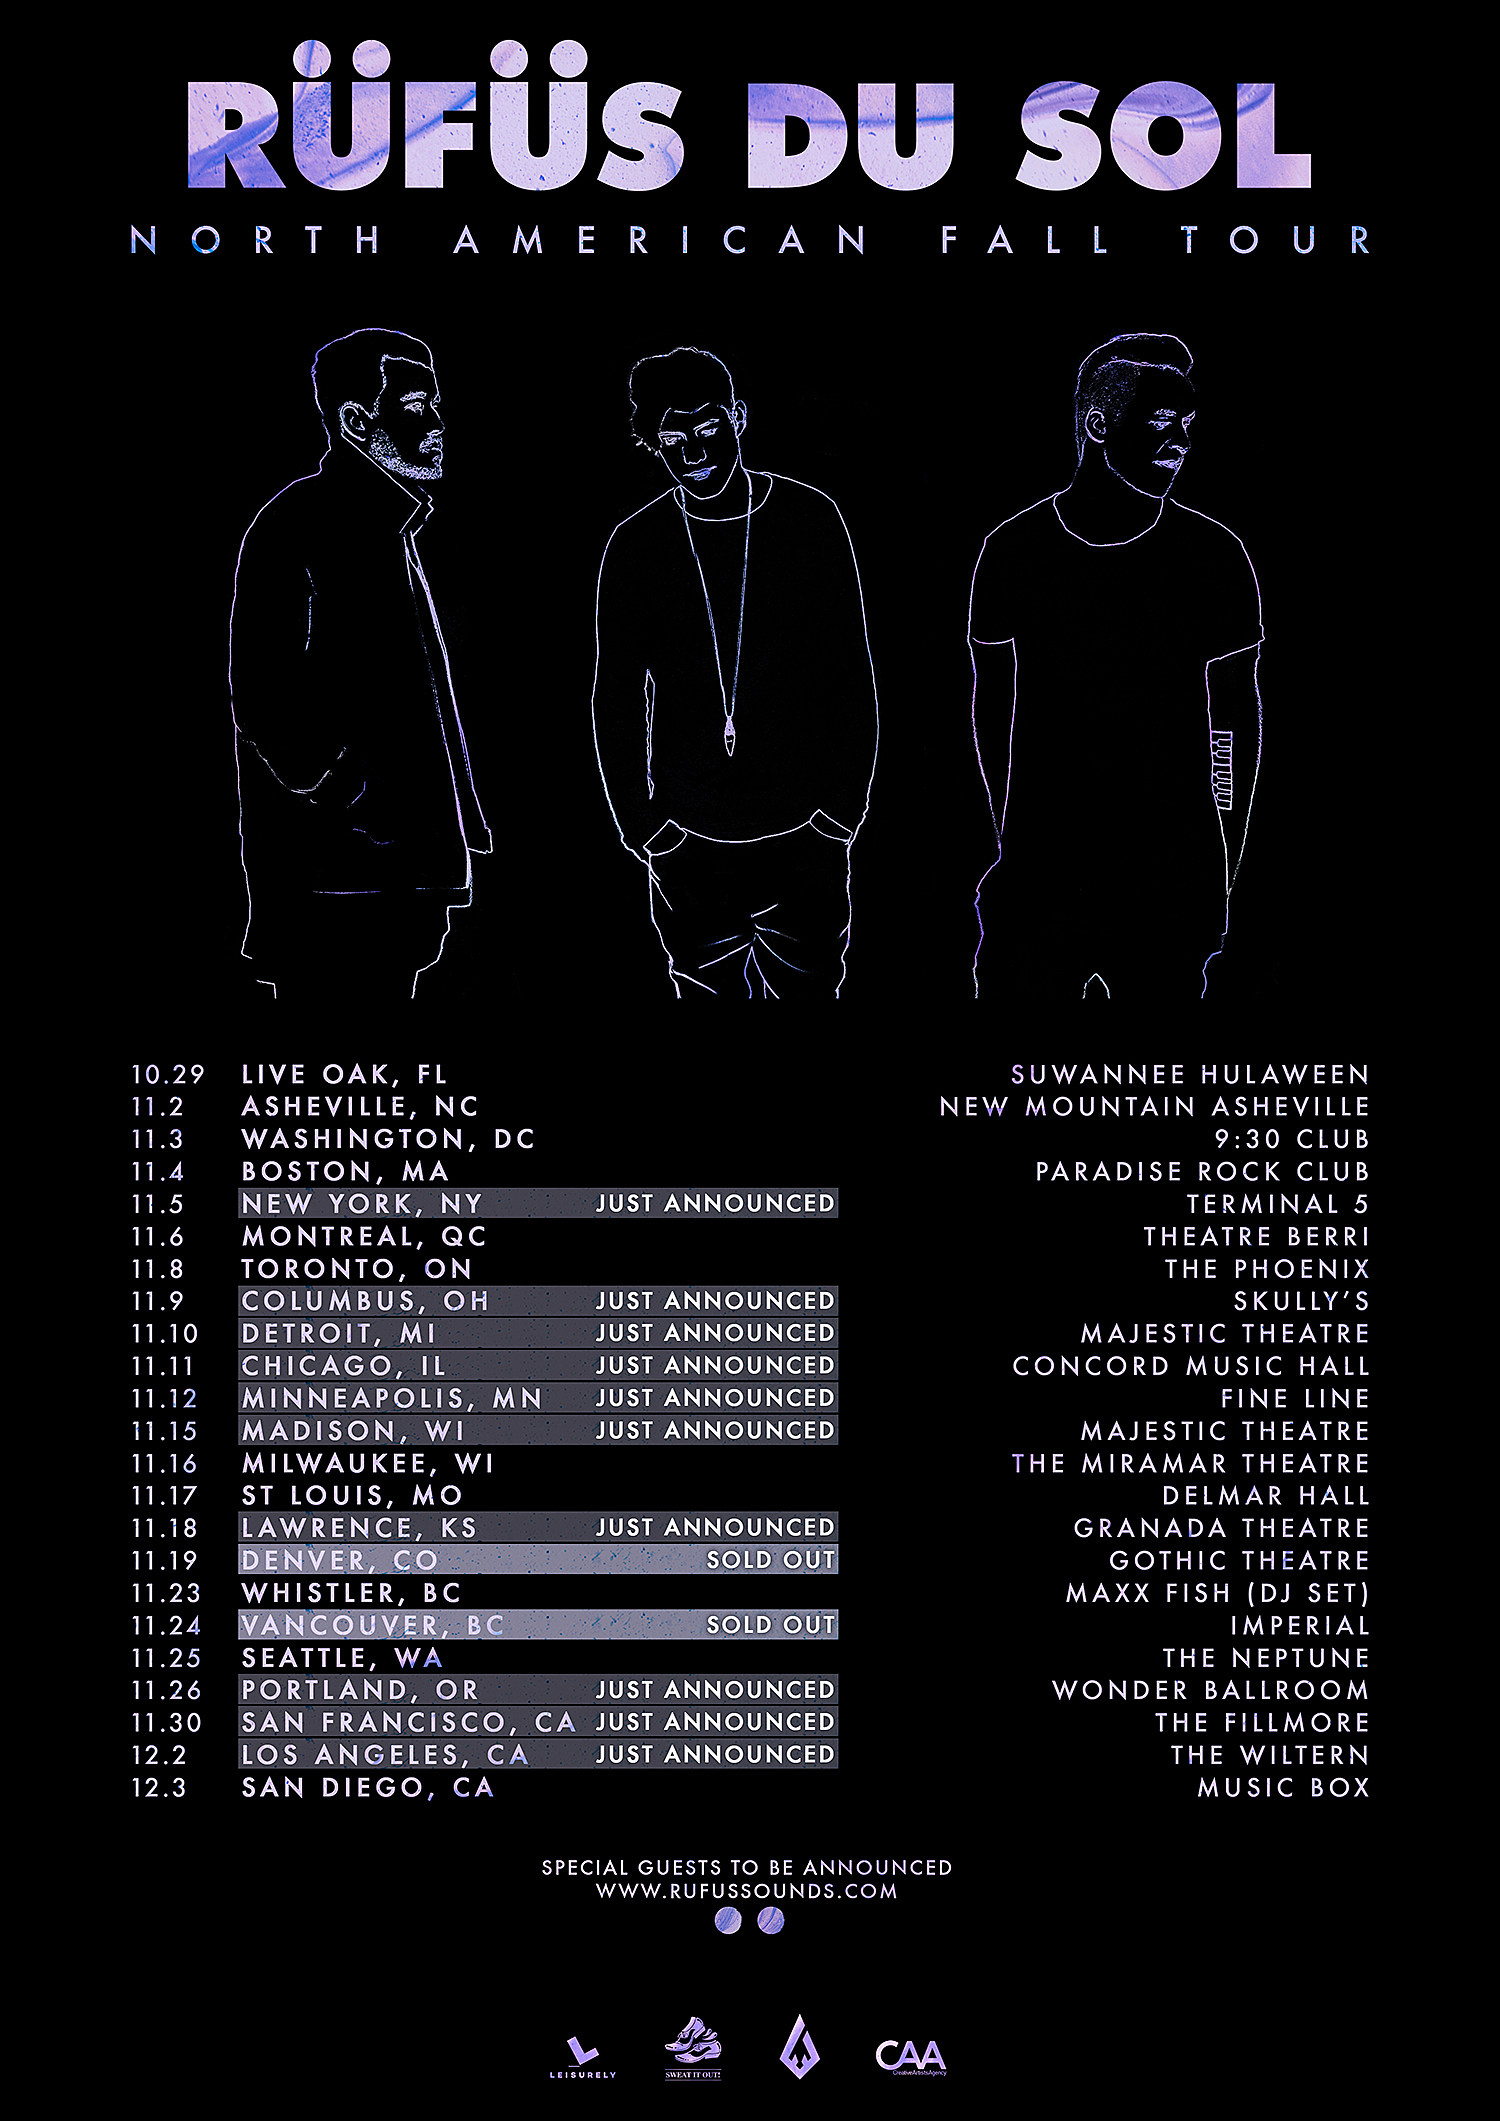 Rufus Du Sol - Phase 2 North American Dates